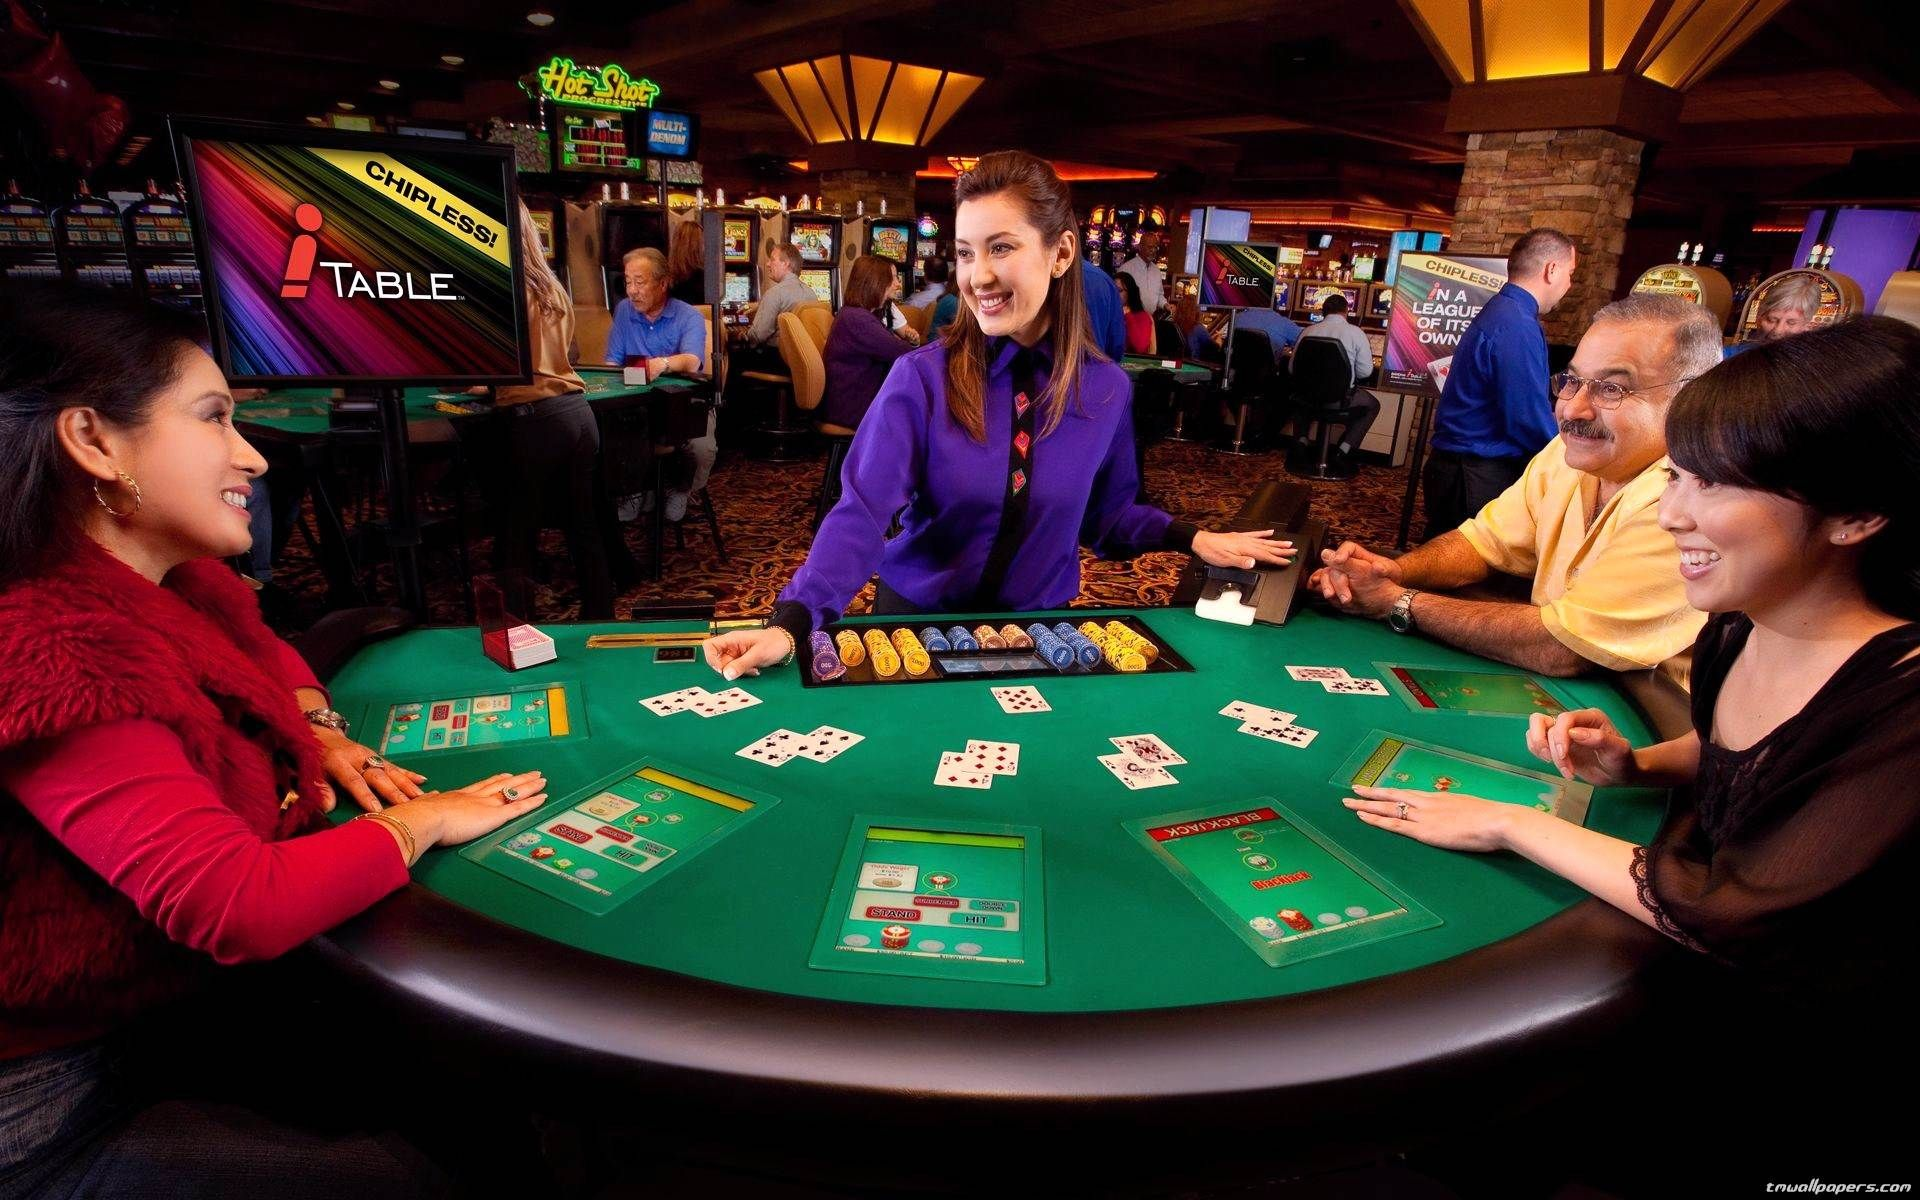 Questioning The best way to Make Your Gambling Rock